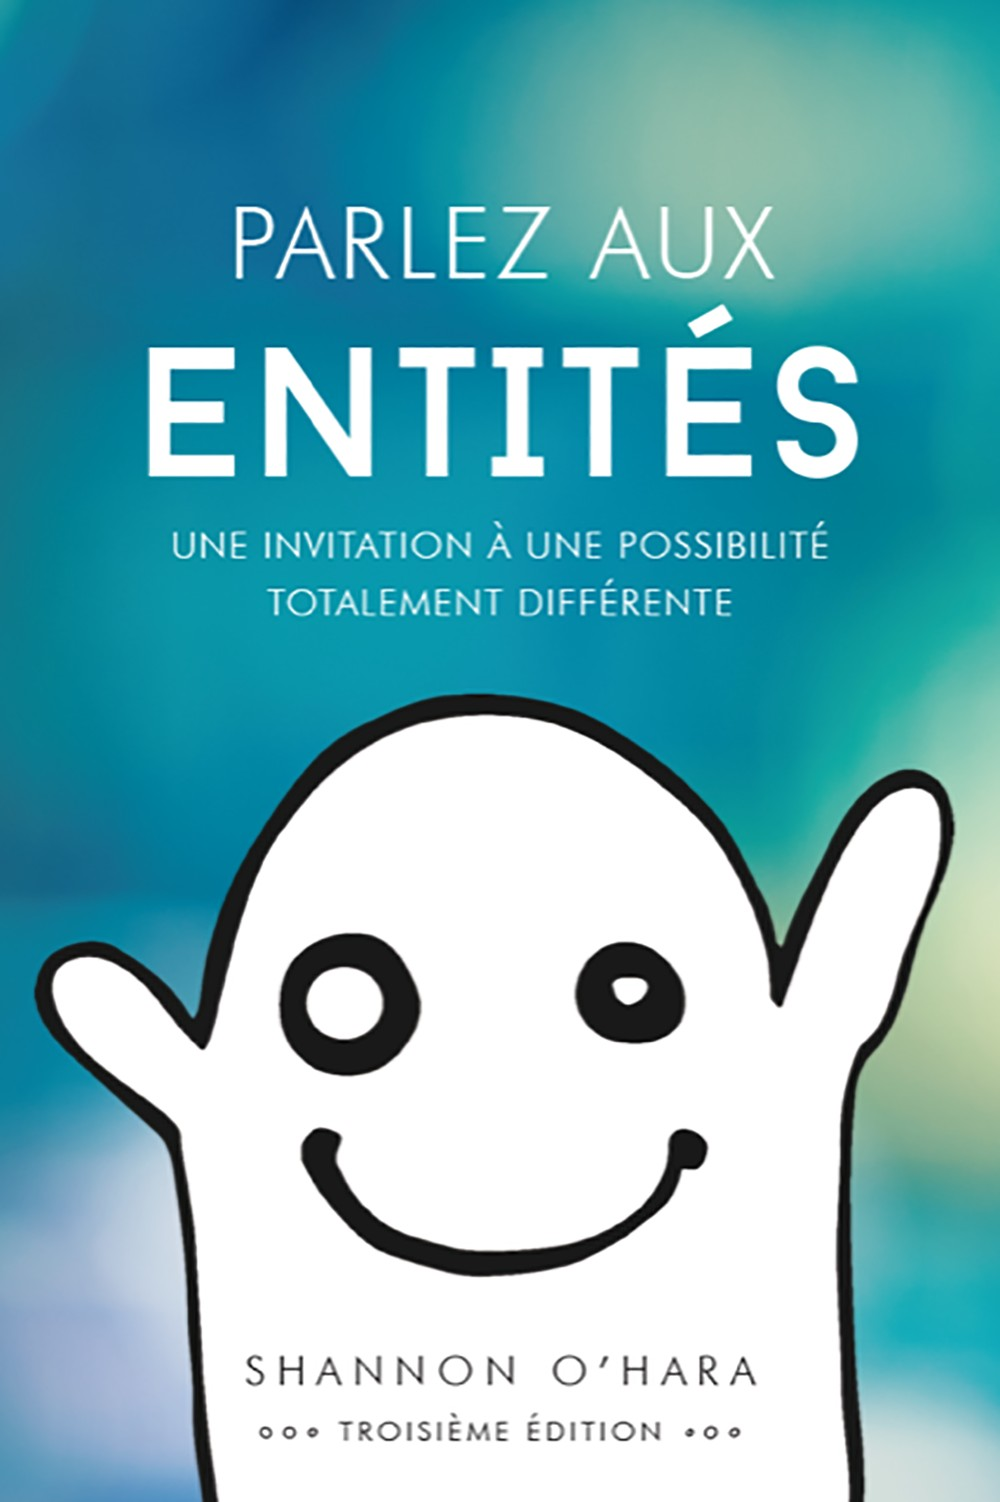 Parlez aux Entites (Talk to the Entities - French Version)